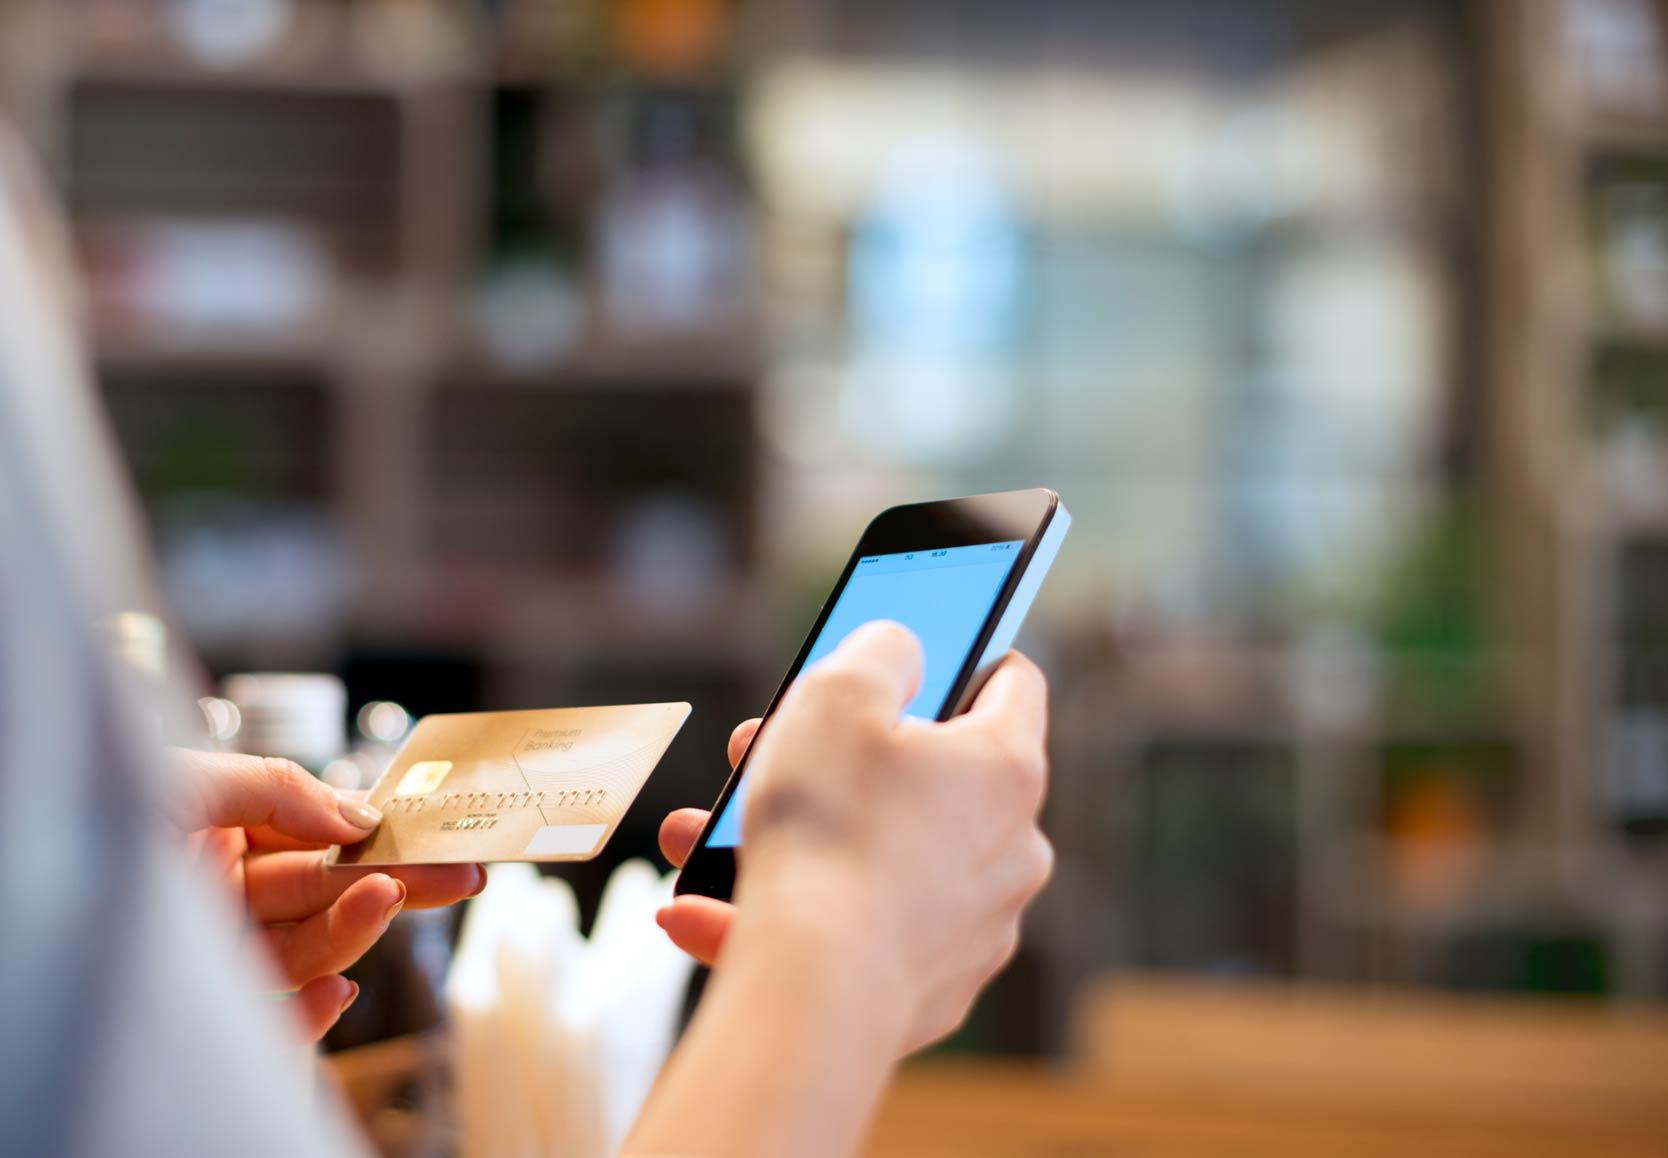 Ecosmob Technologies Enables Payment Processing Solution using IVRS